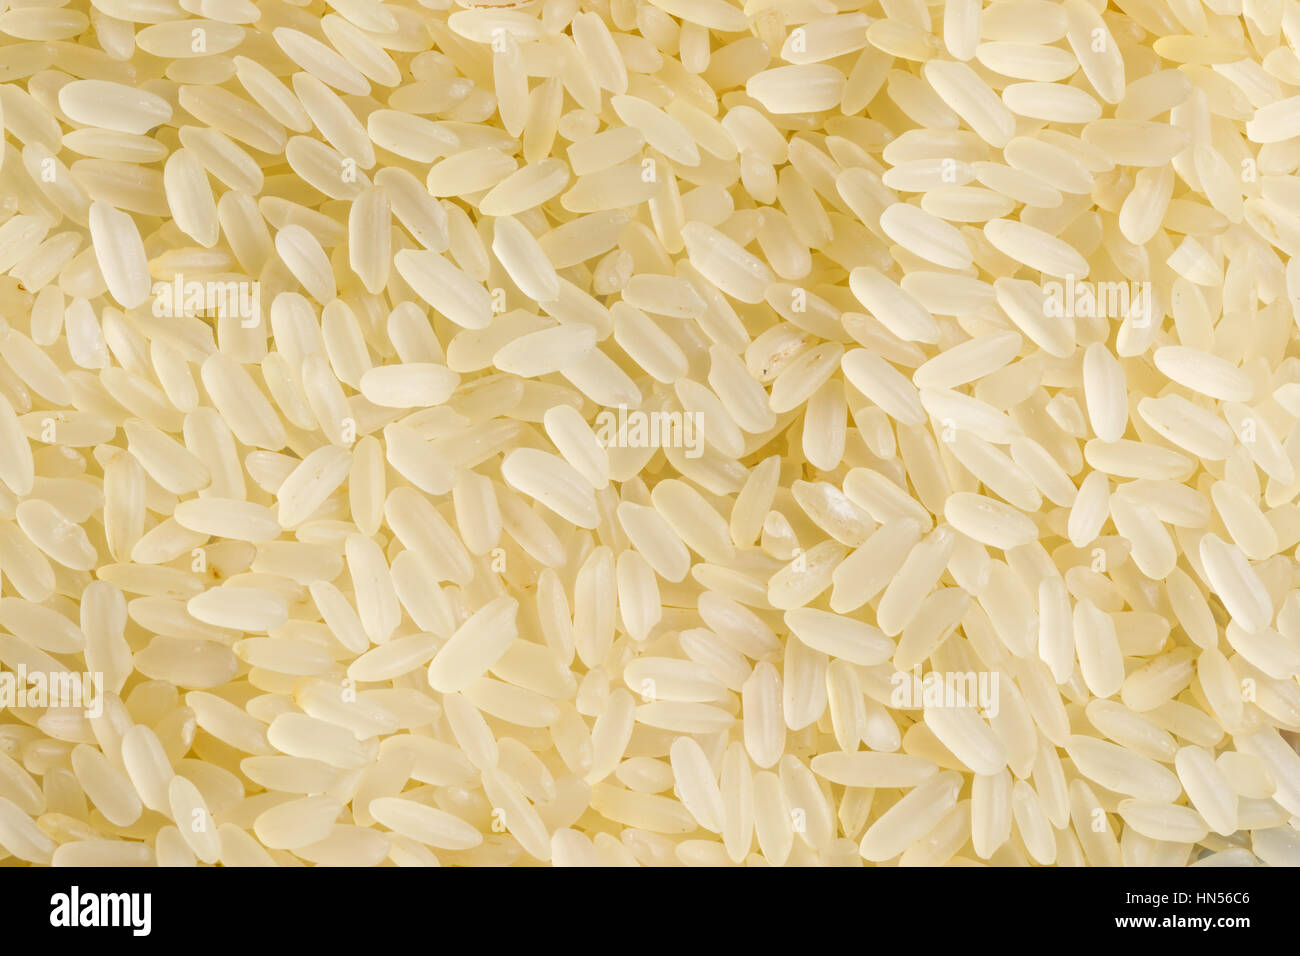 rice raw food ingredient texture macro close up detailed Stock Photo